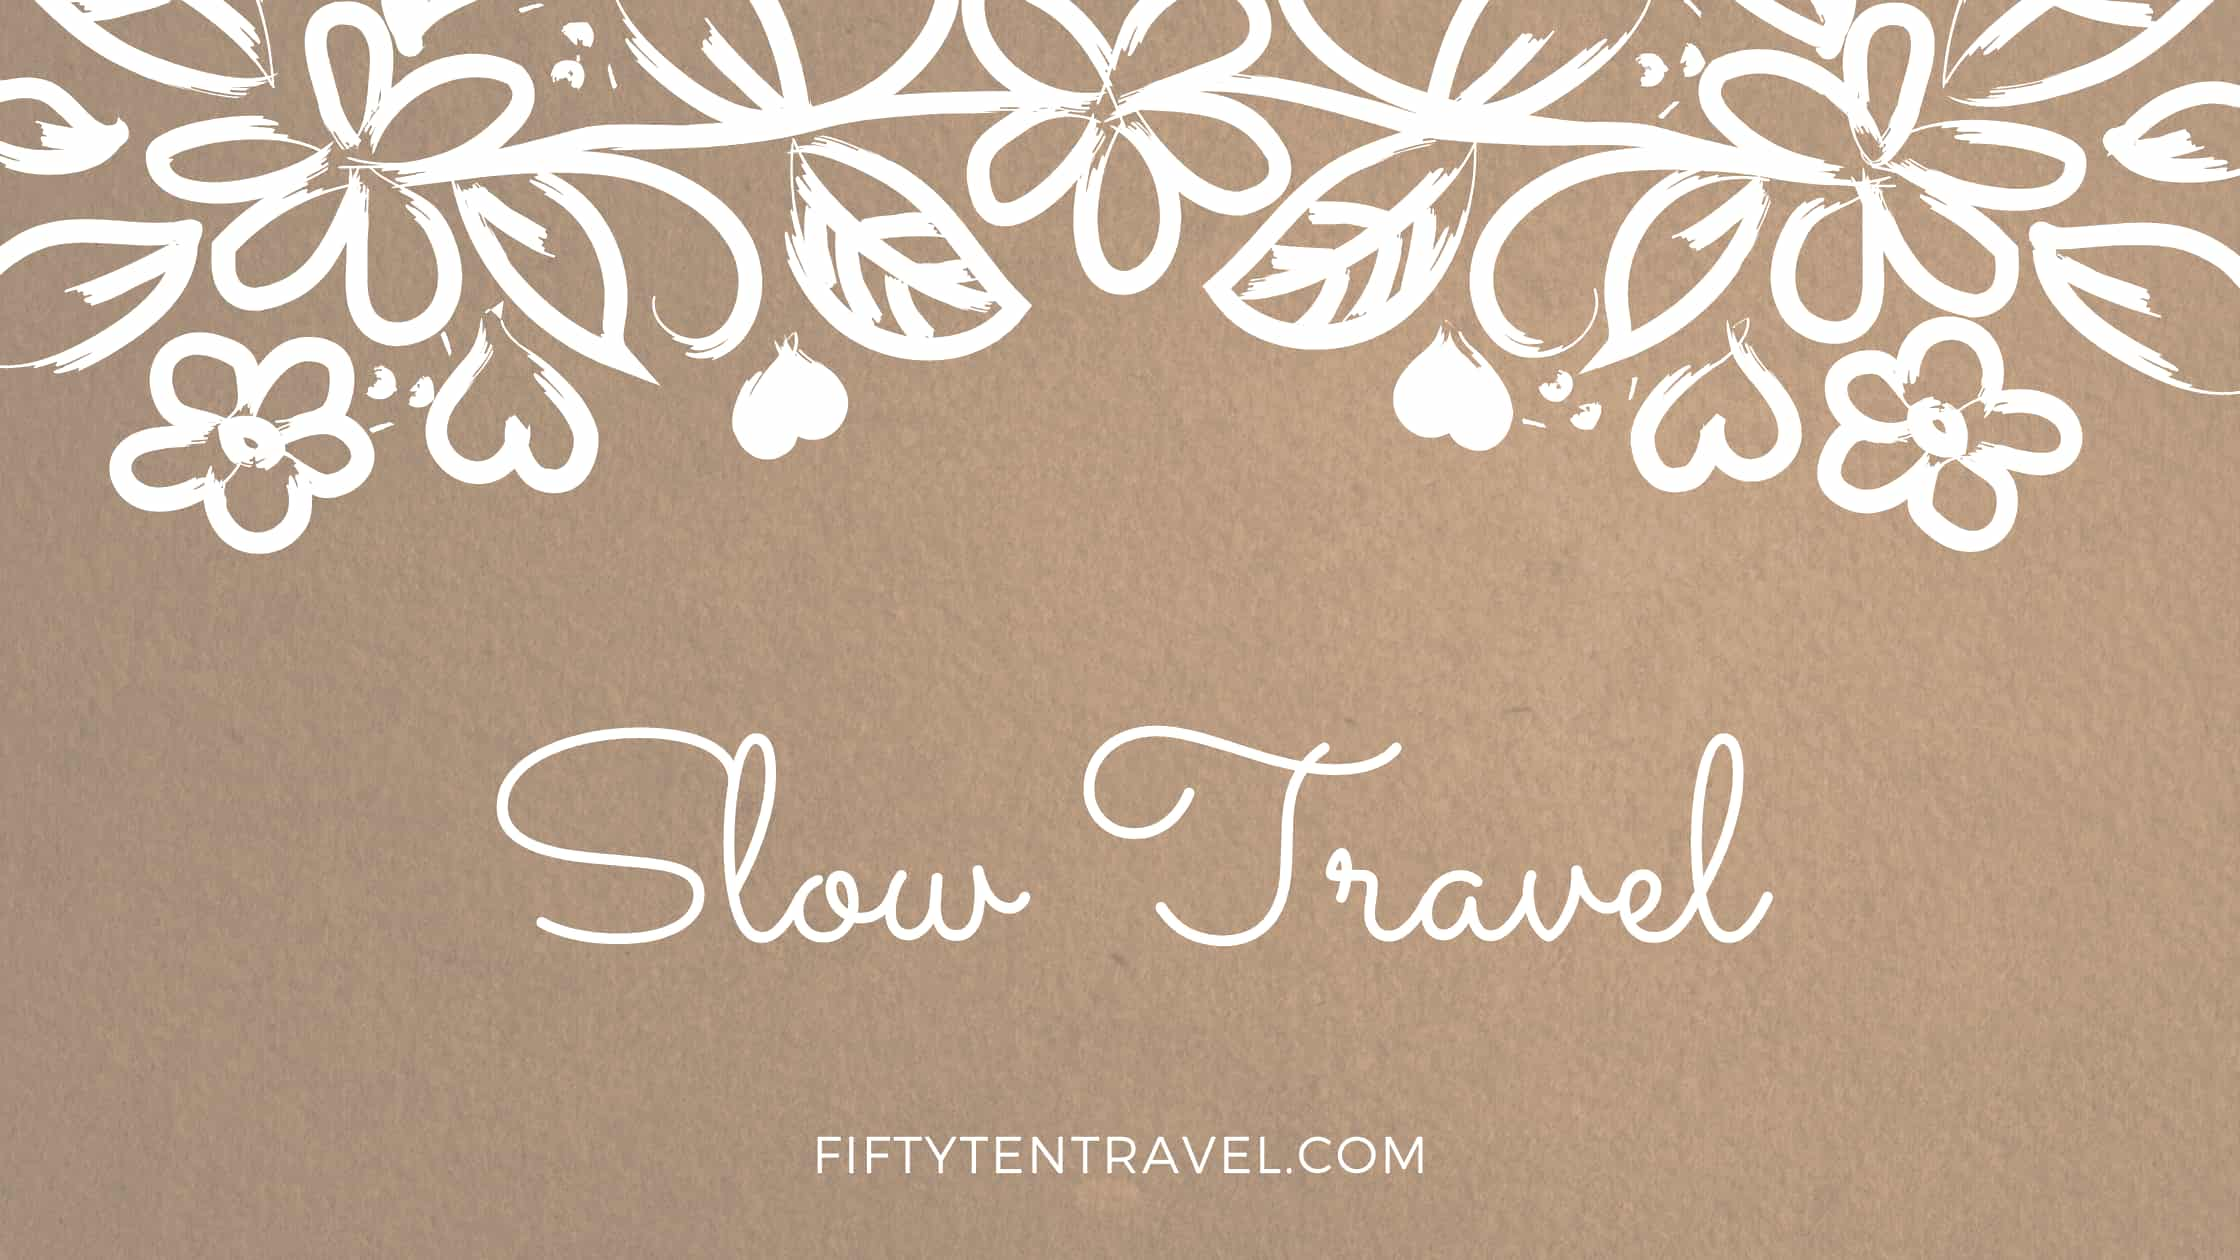 slow travel with fifty ten travel